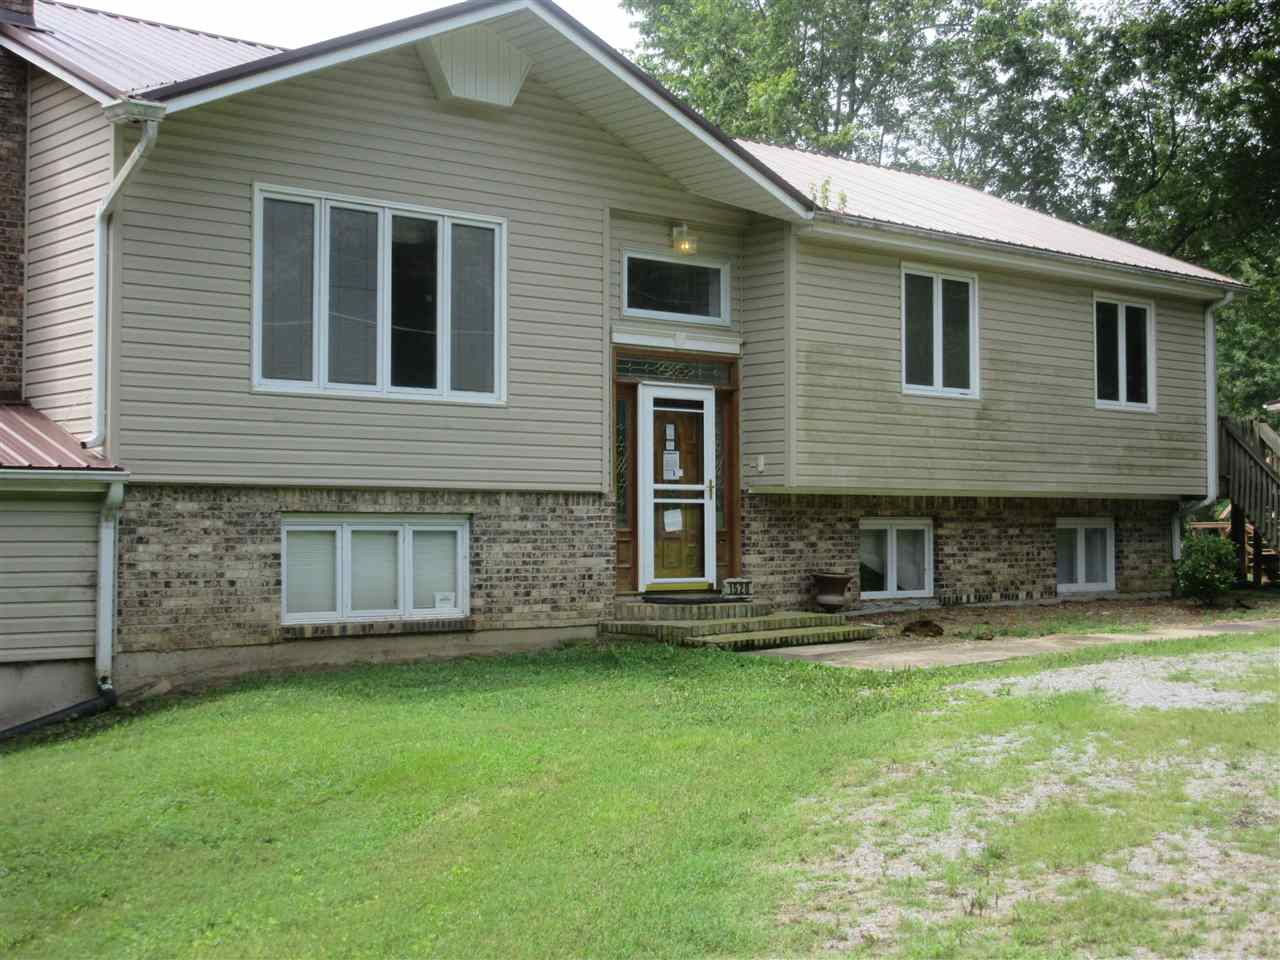 Photo of 1520 Bryan Rd  Boaz  KY